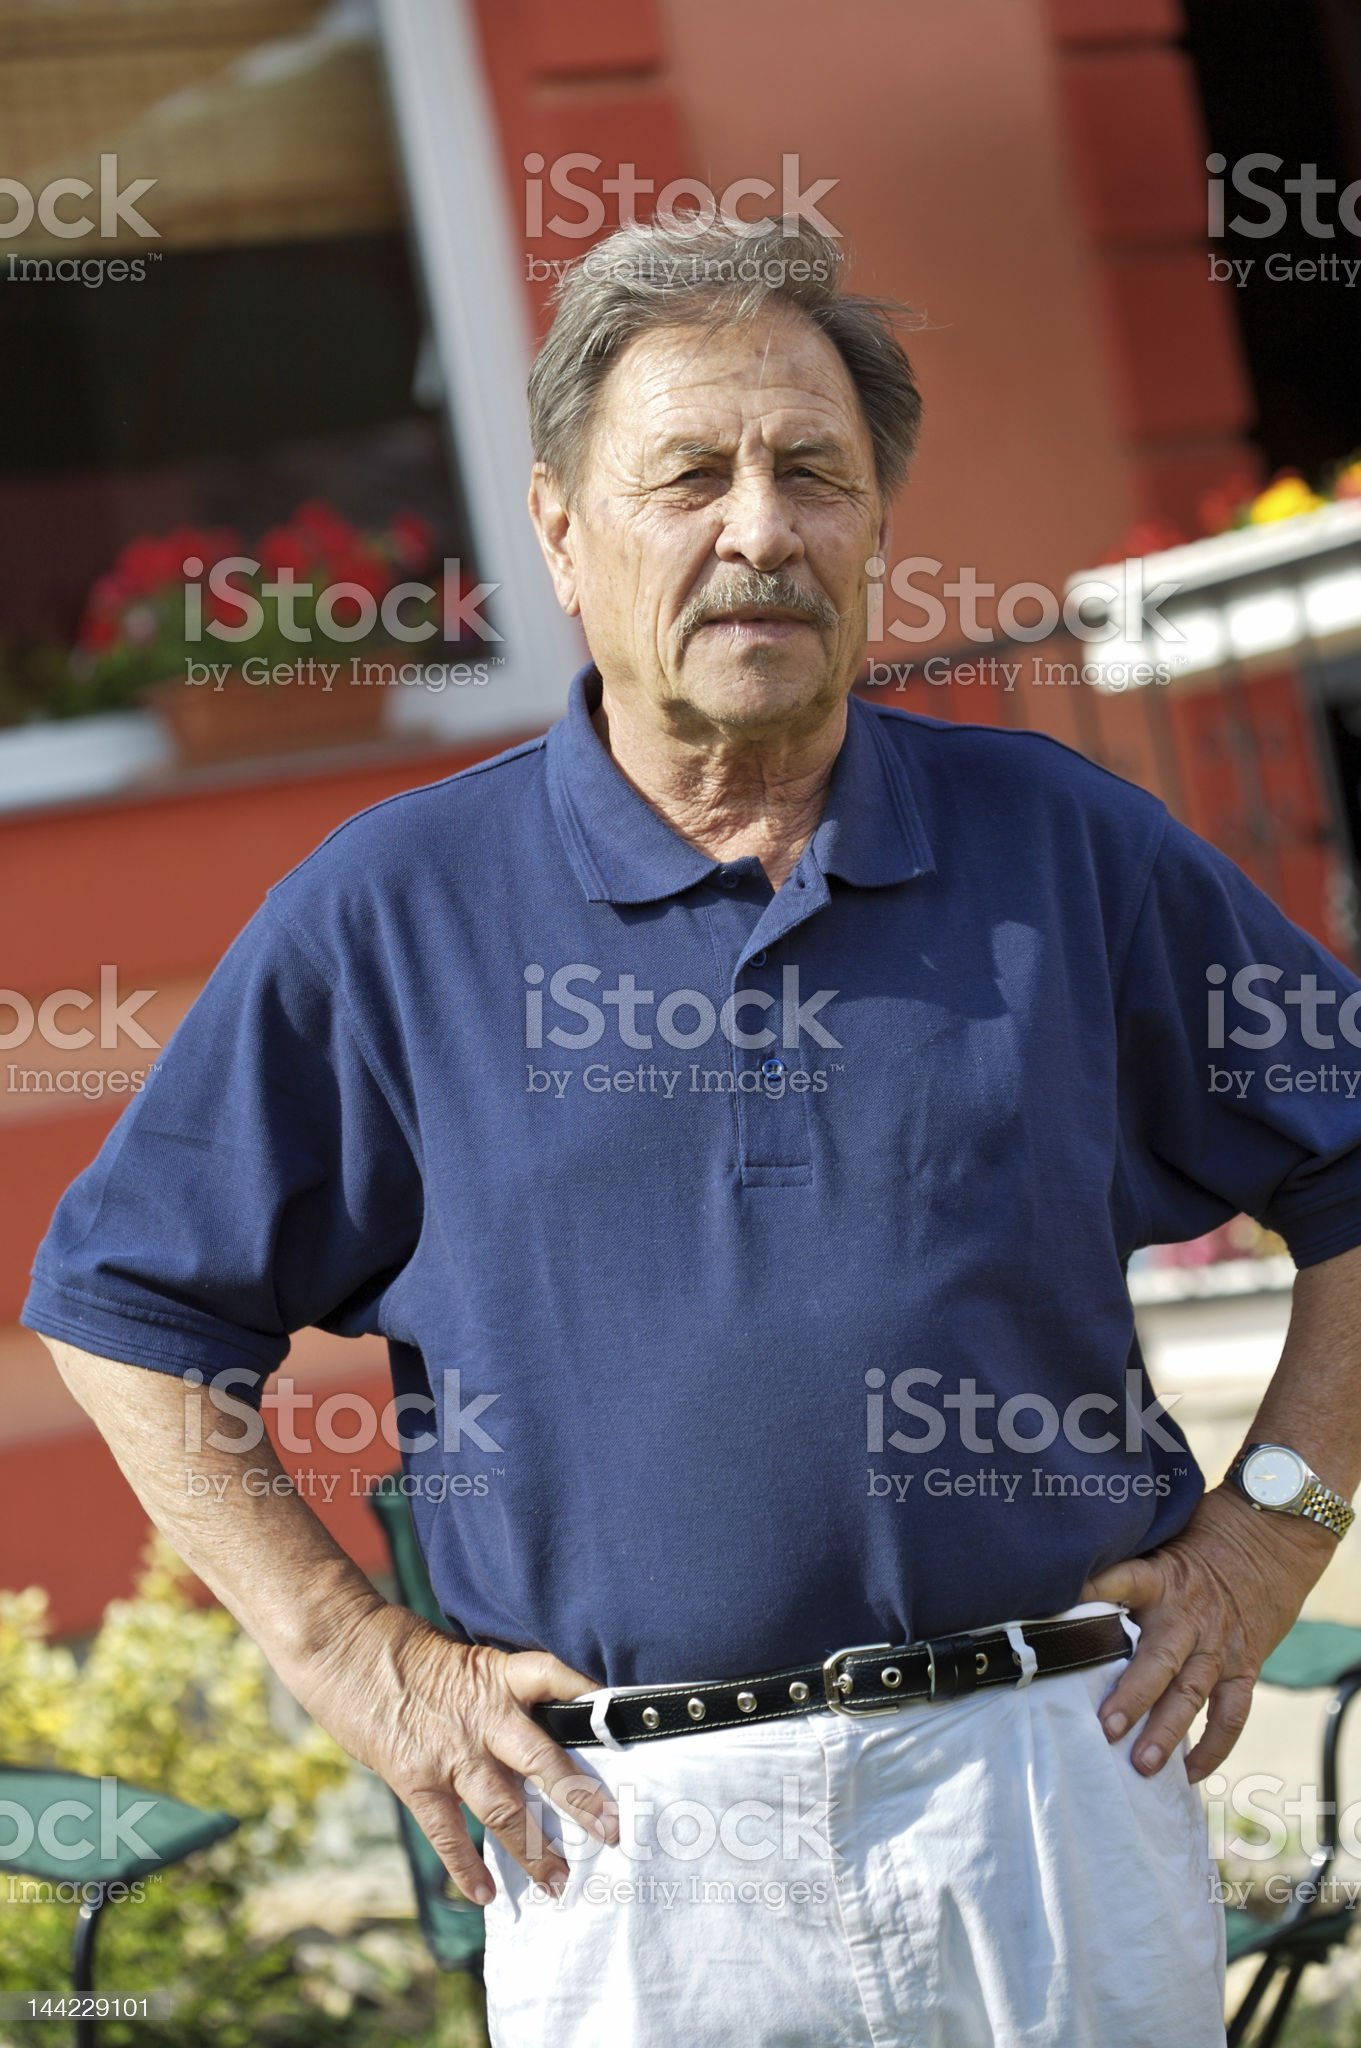 Boomer royalty-free stock photo